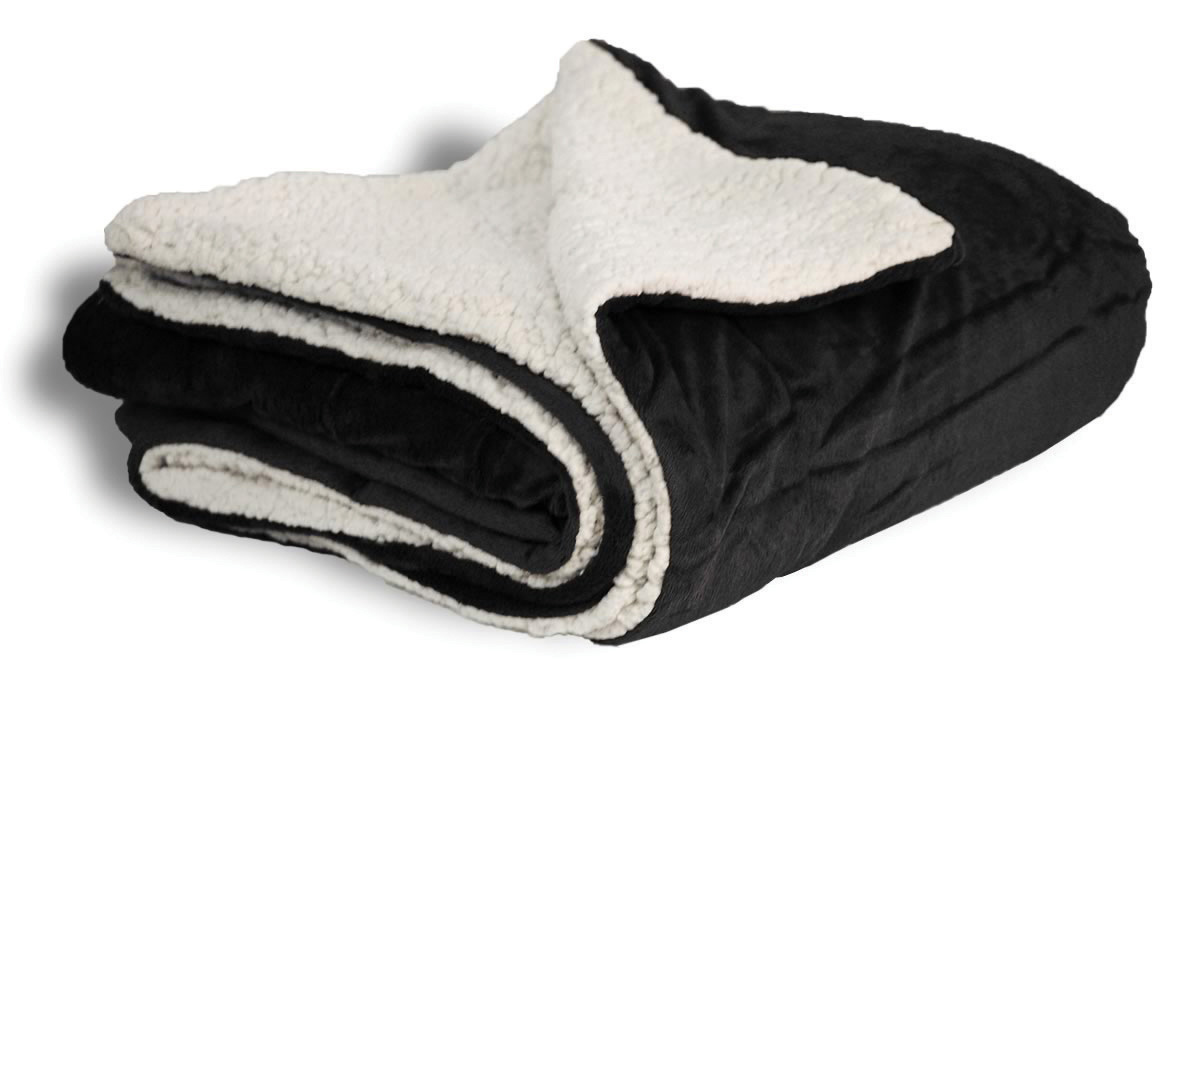 EMBROIDERED Black 50x60 Micro Mink Sherpa Blanket